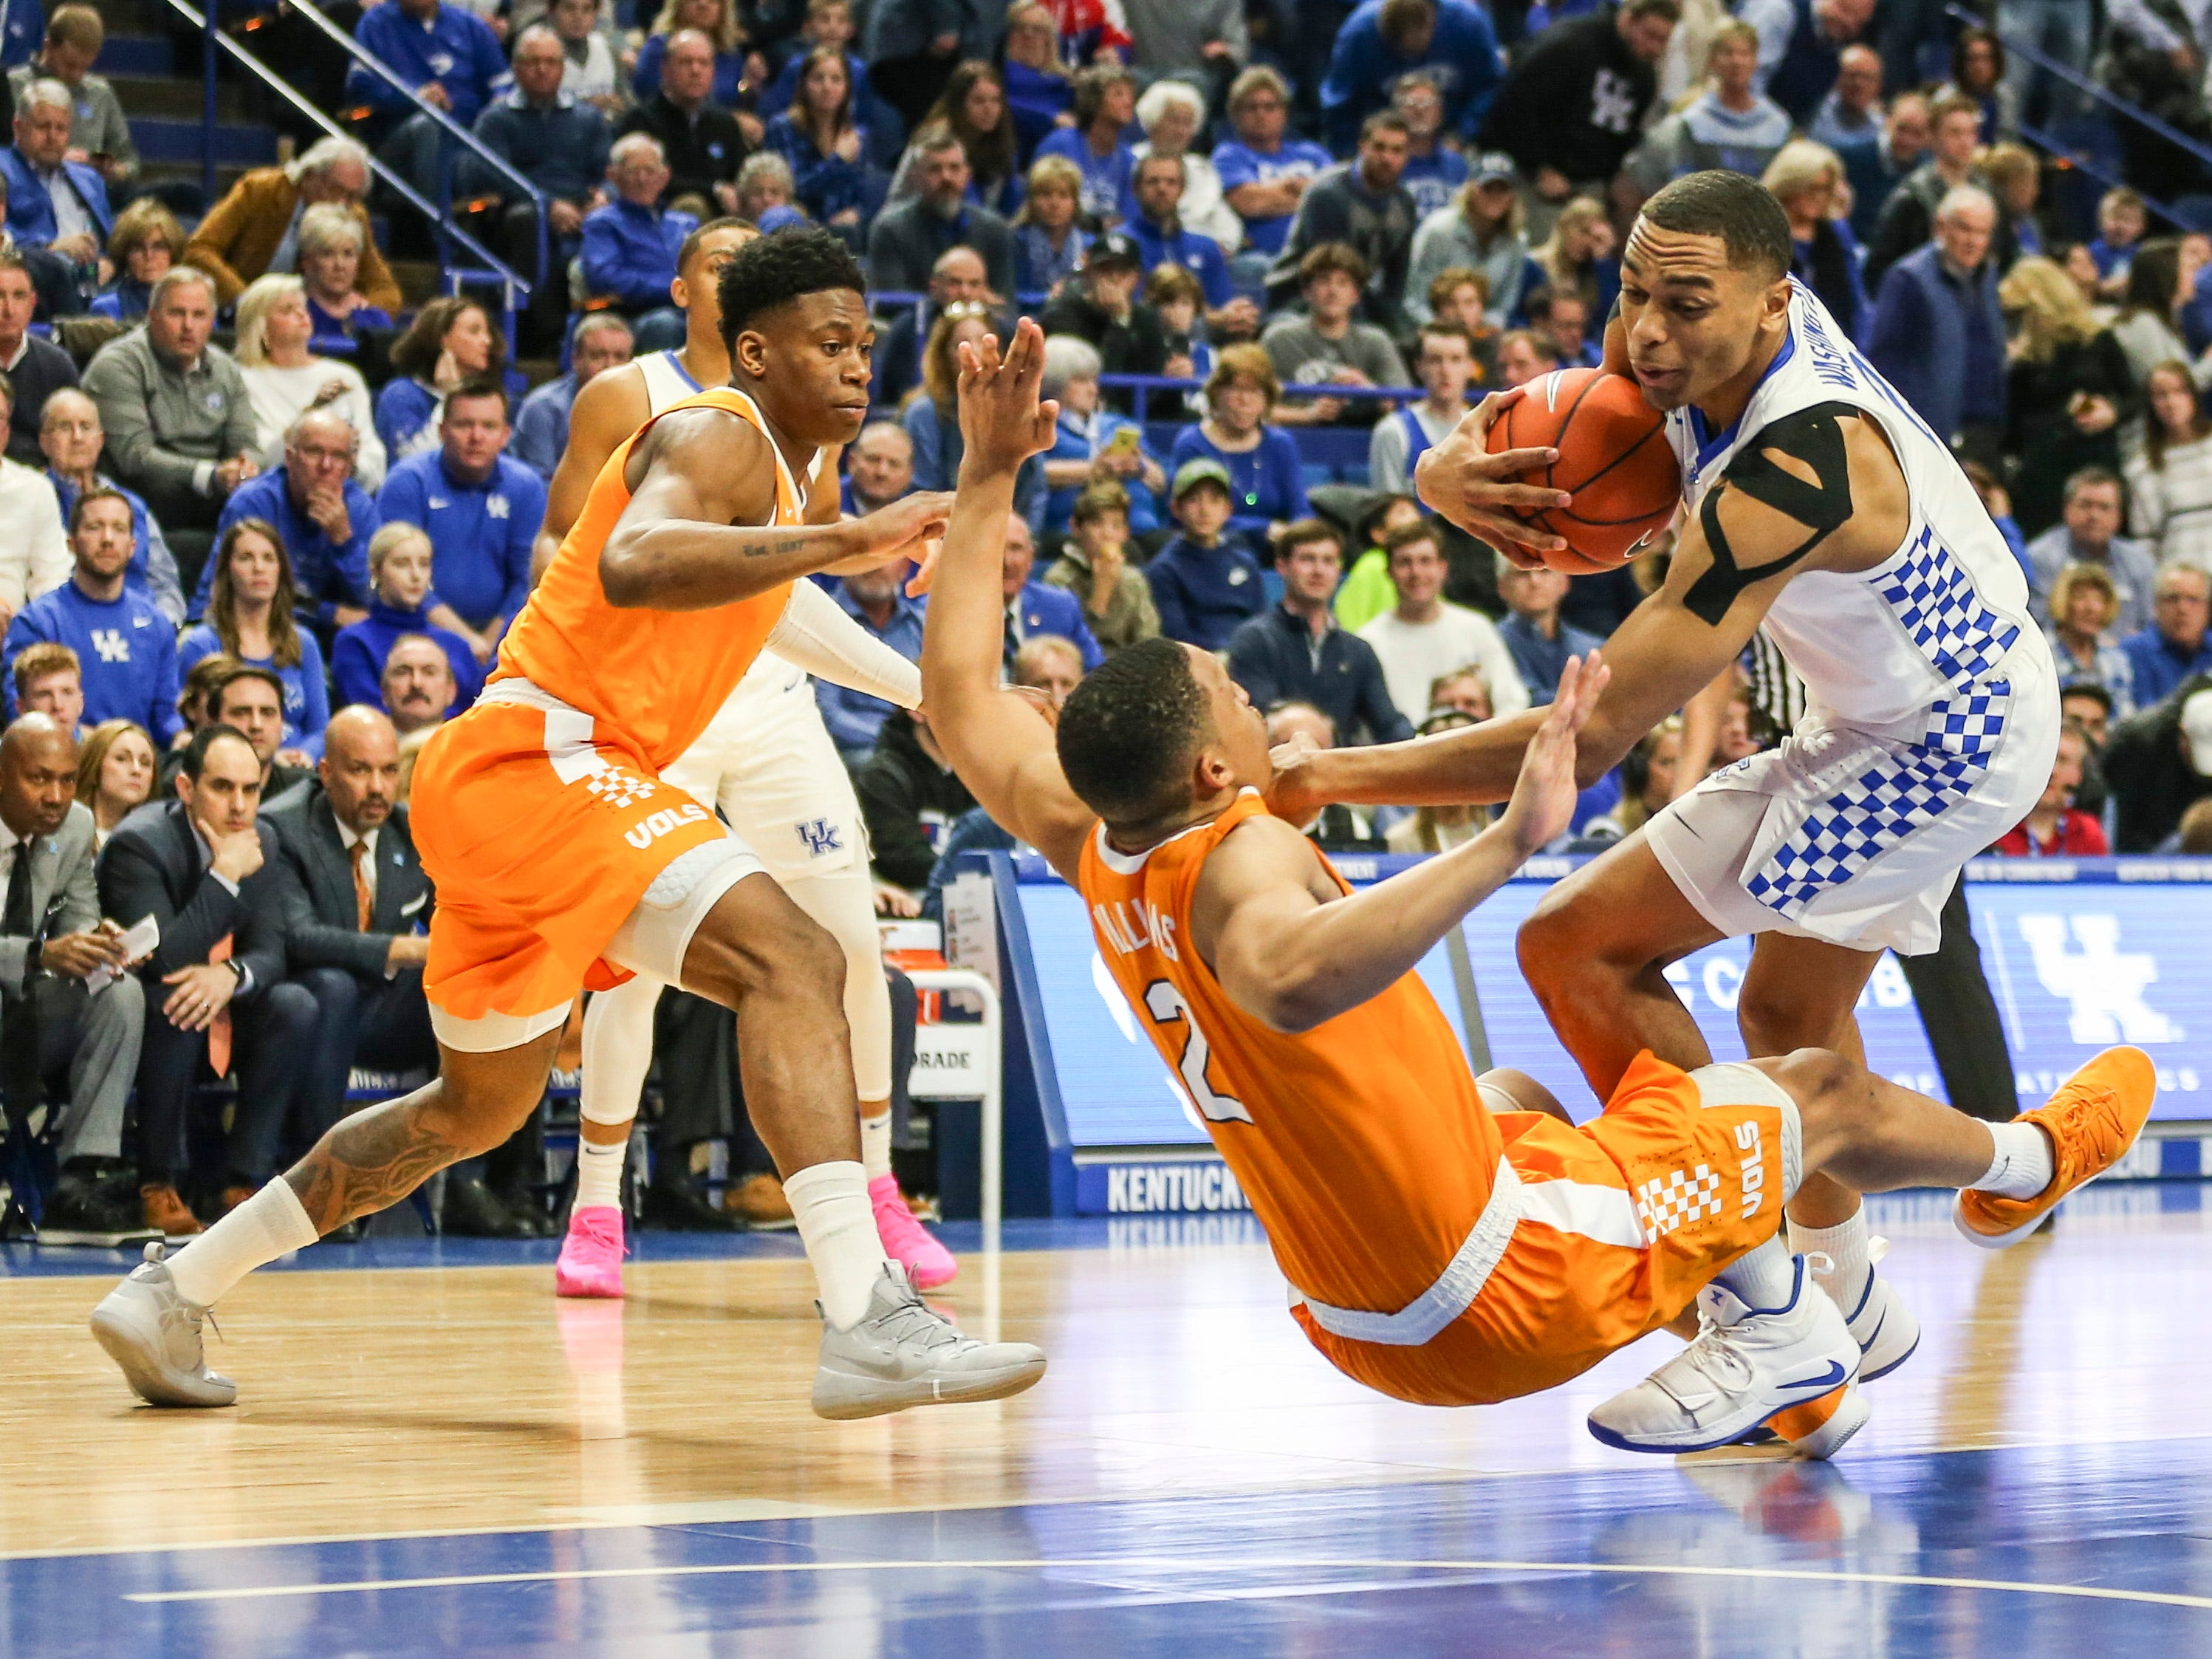 Kentucky's PJ Washington Jr was called for the charge against Tennessee's Grant Williams in his first drive during the first half. Feb. 16, 2019